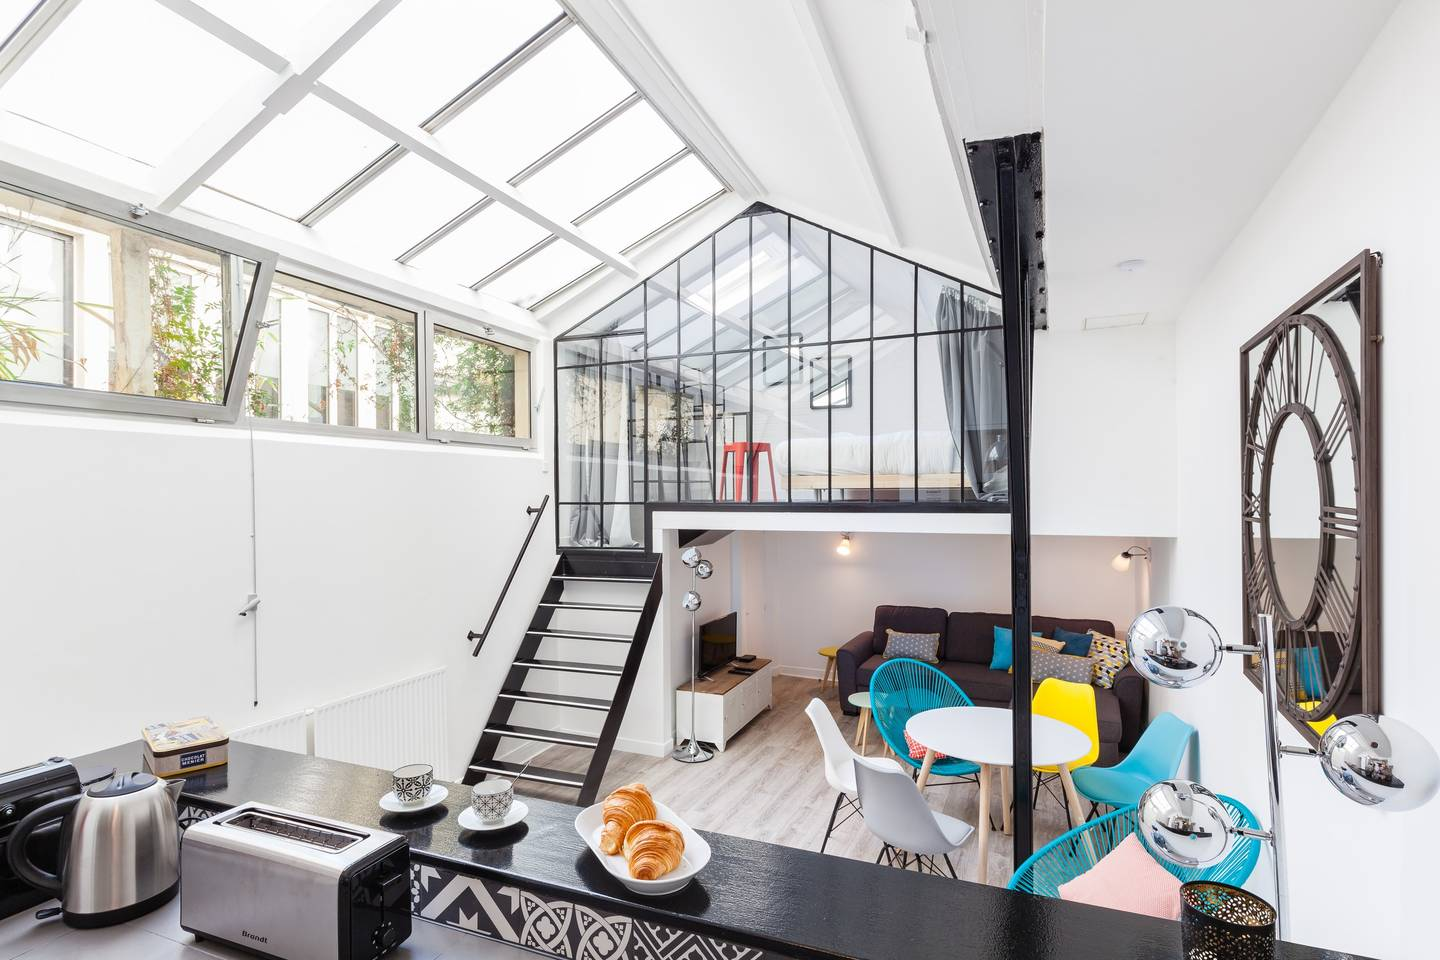 artists loft in paris from airbnb